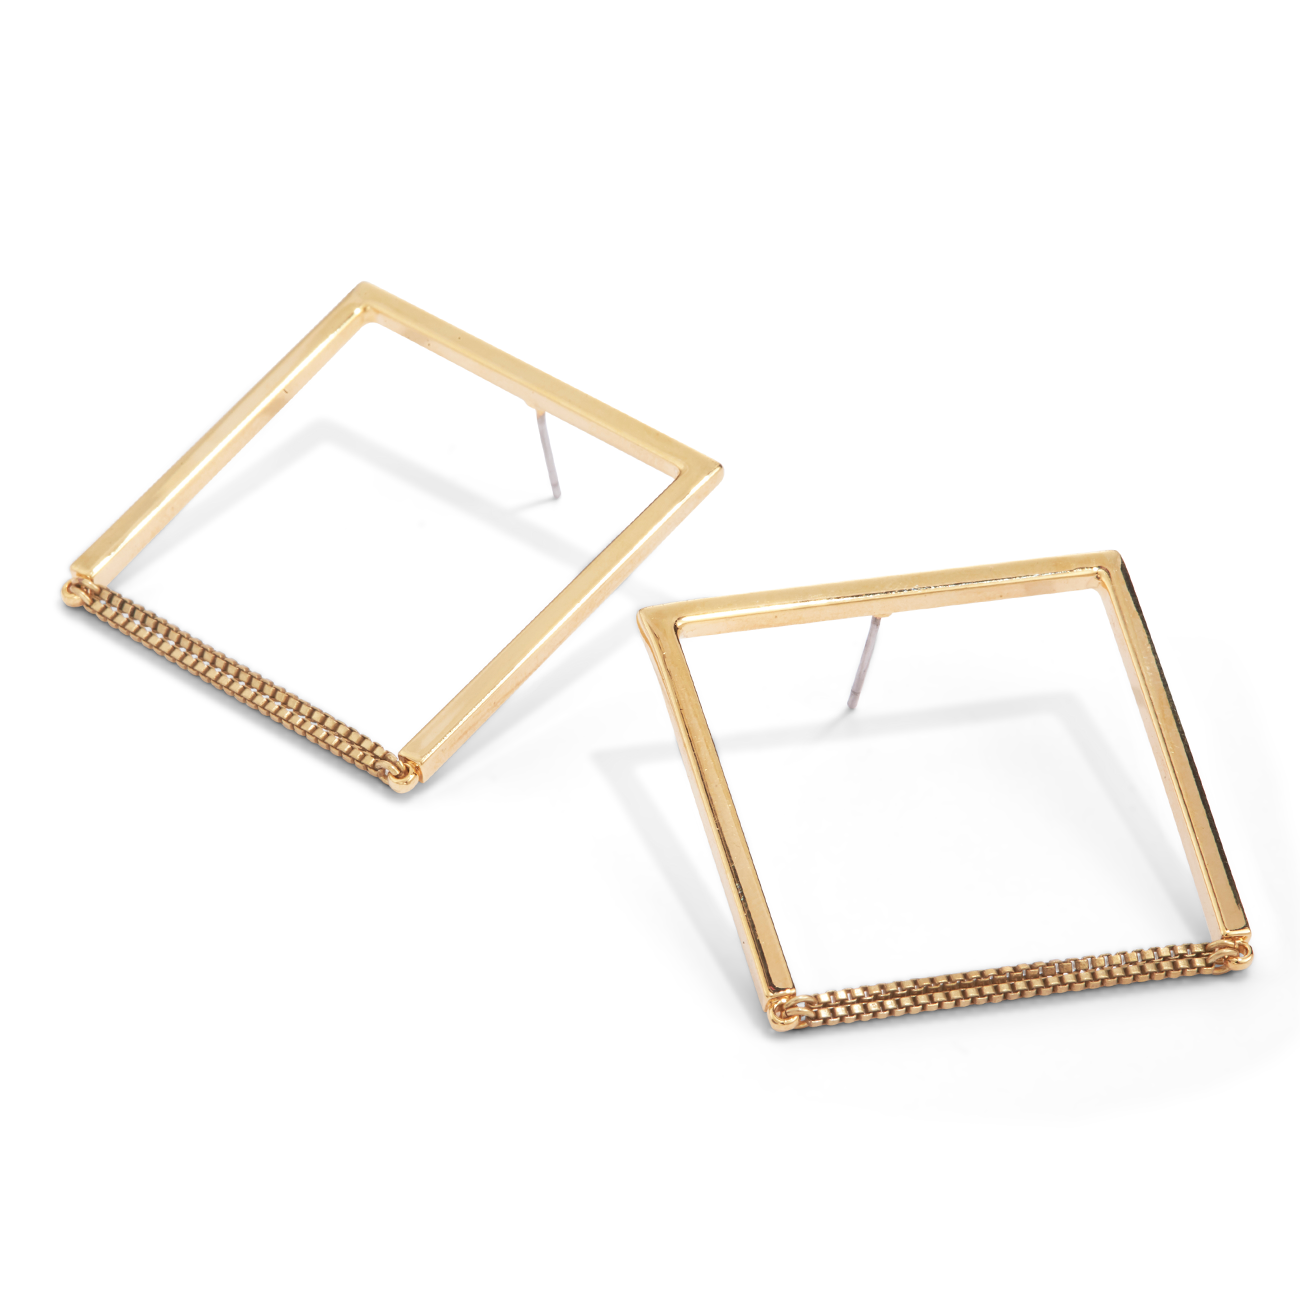 Gold square shaped Nora hoop Earrings by Jenny Bird